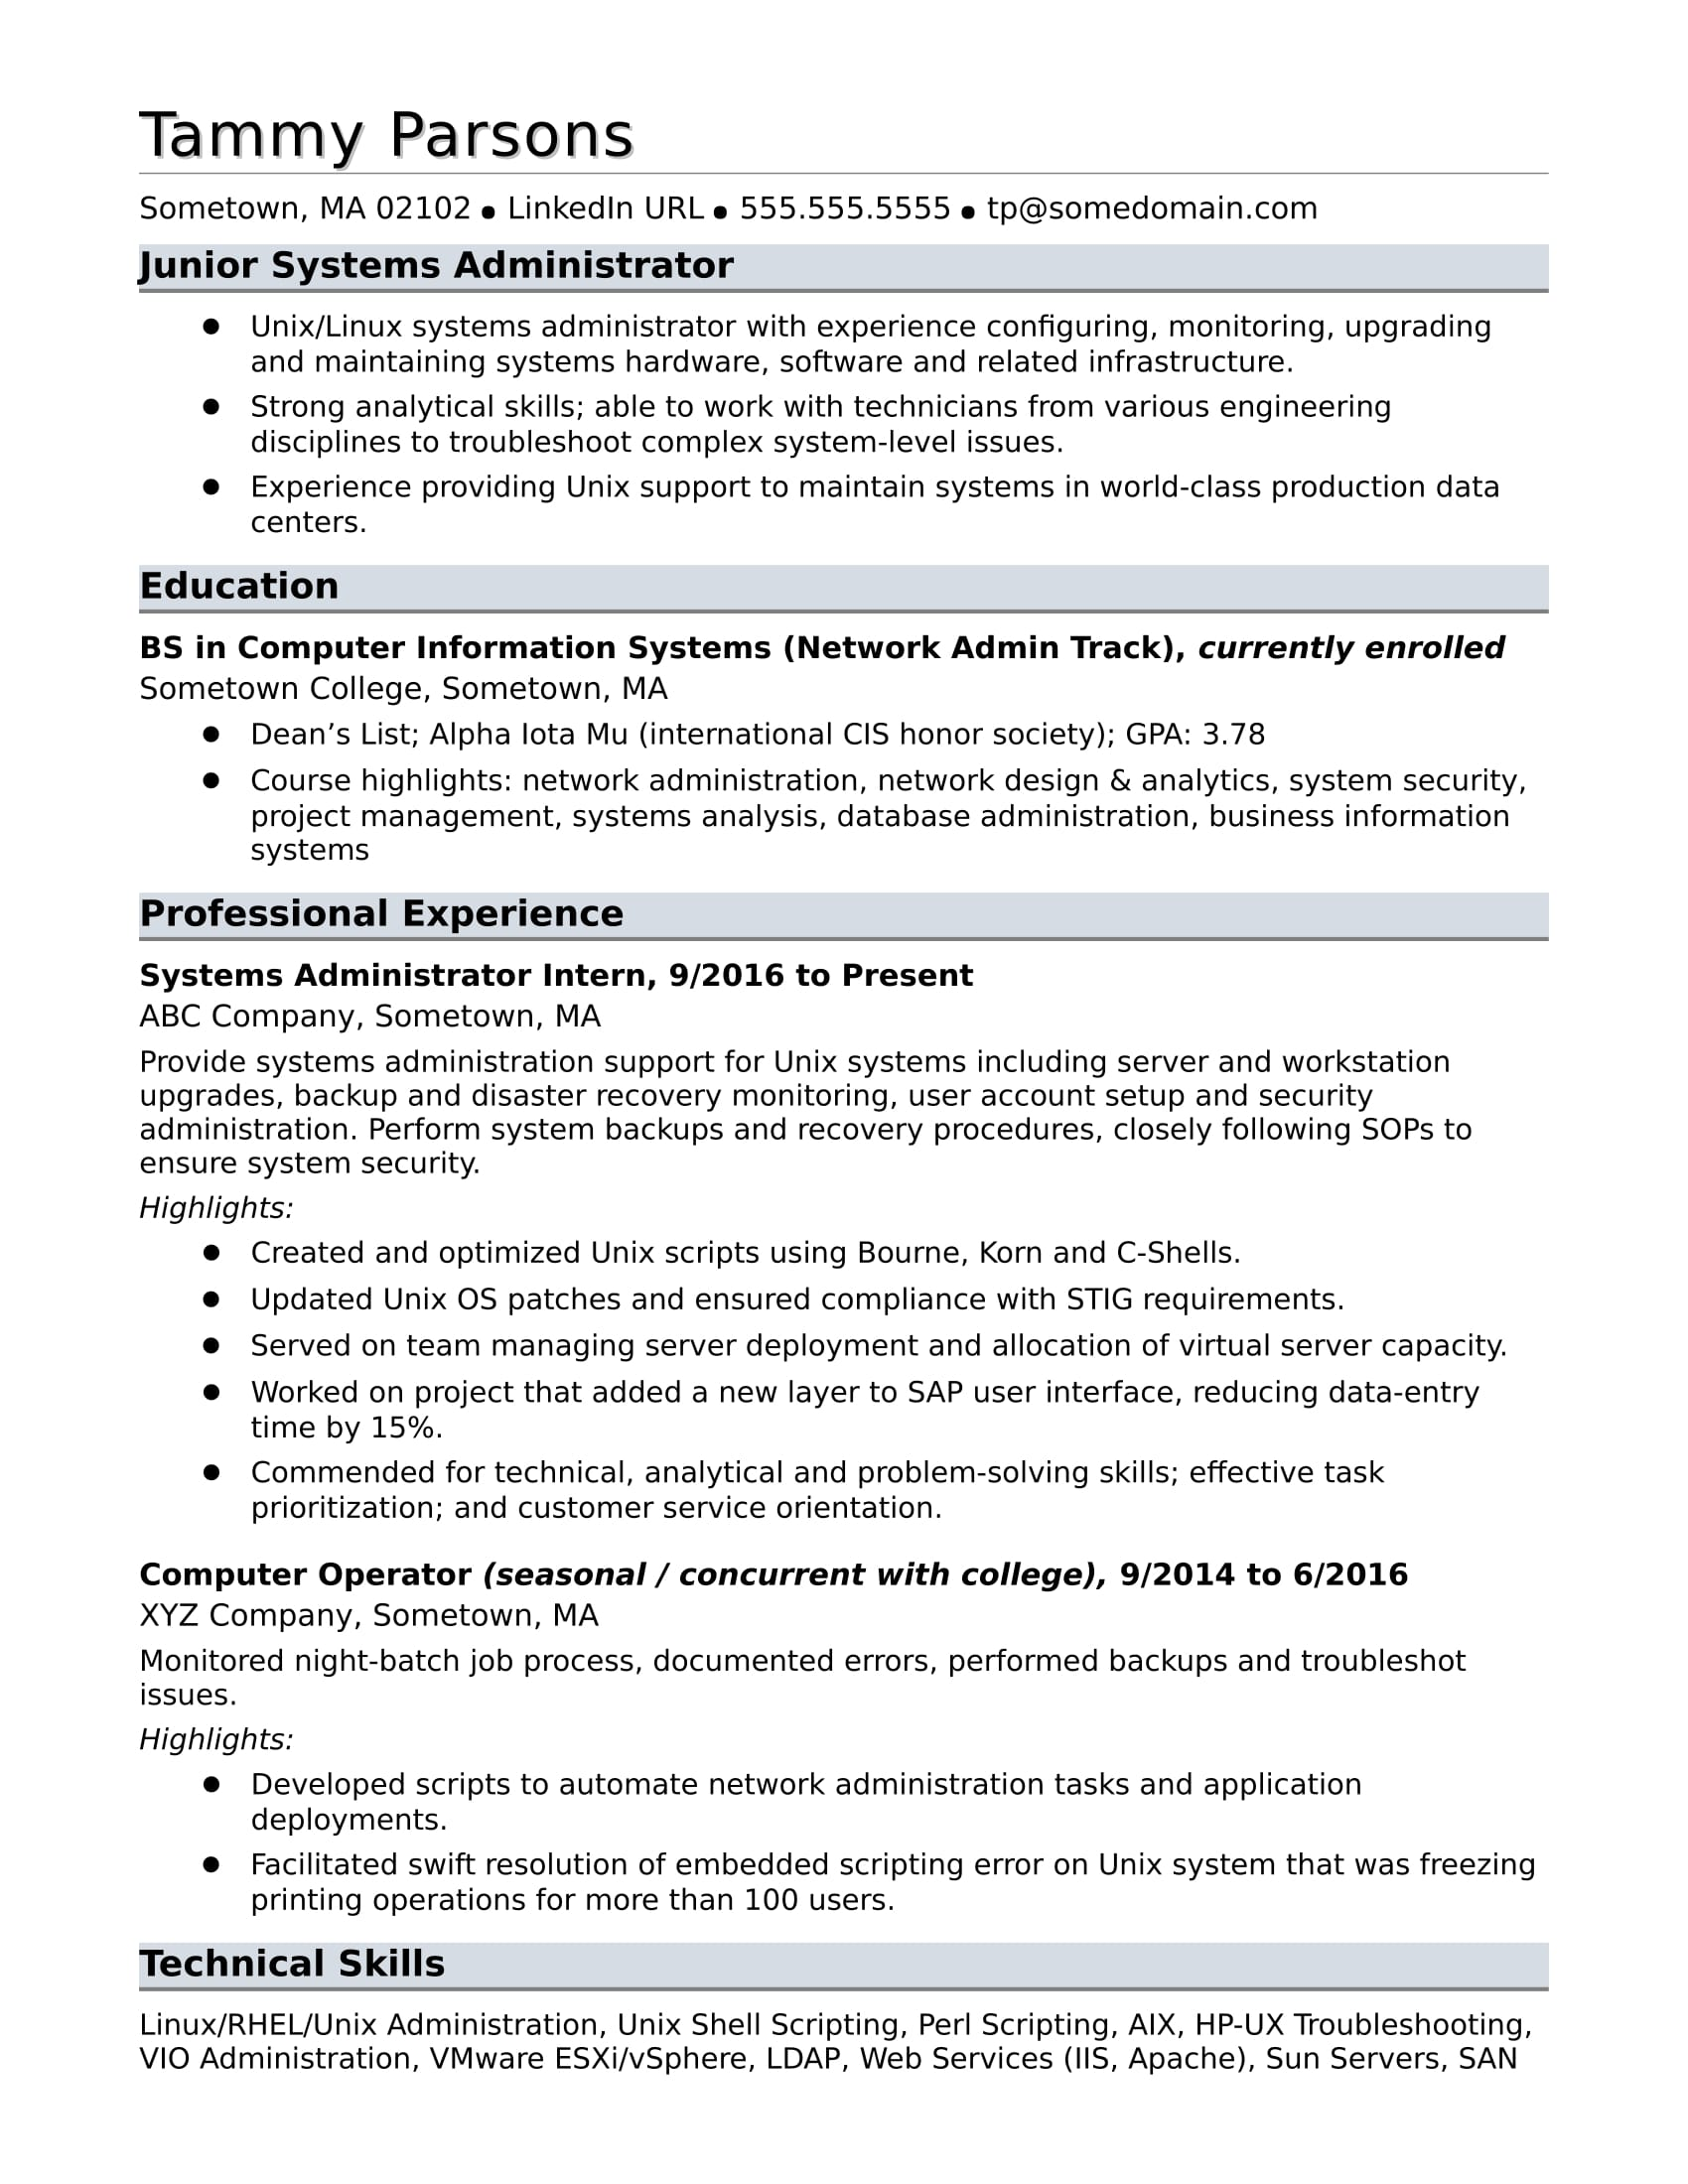 S Le Resume For An Entry Level Systems Administrator